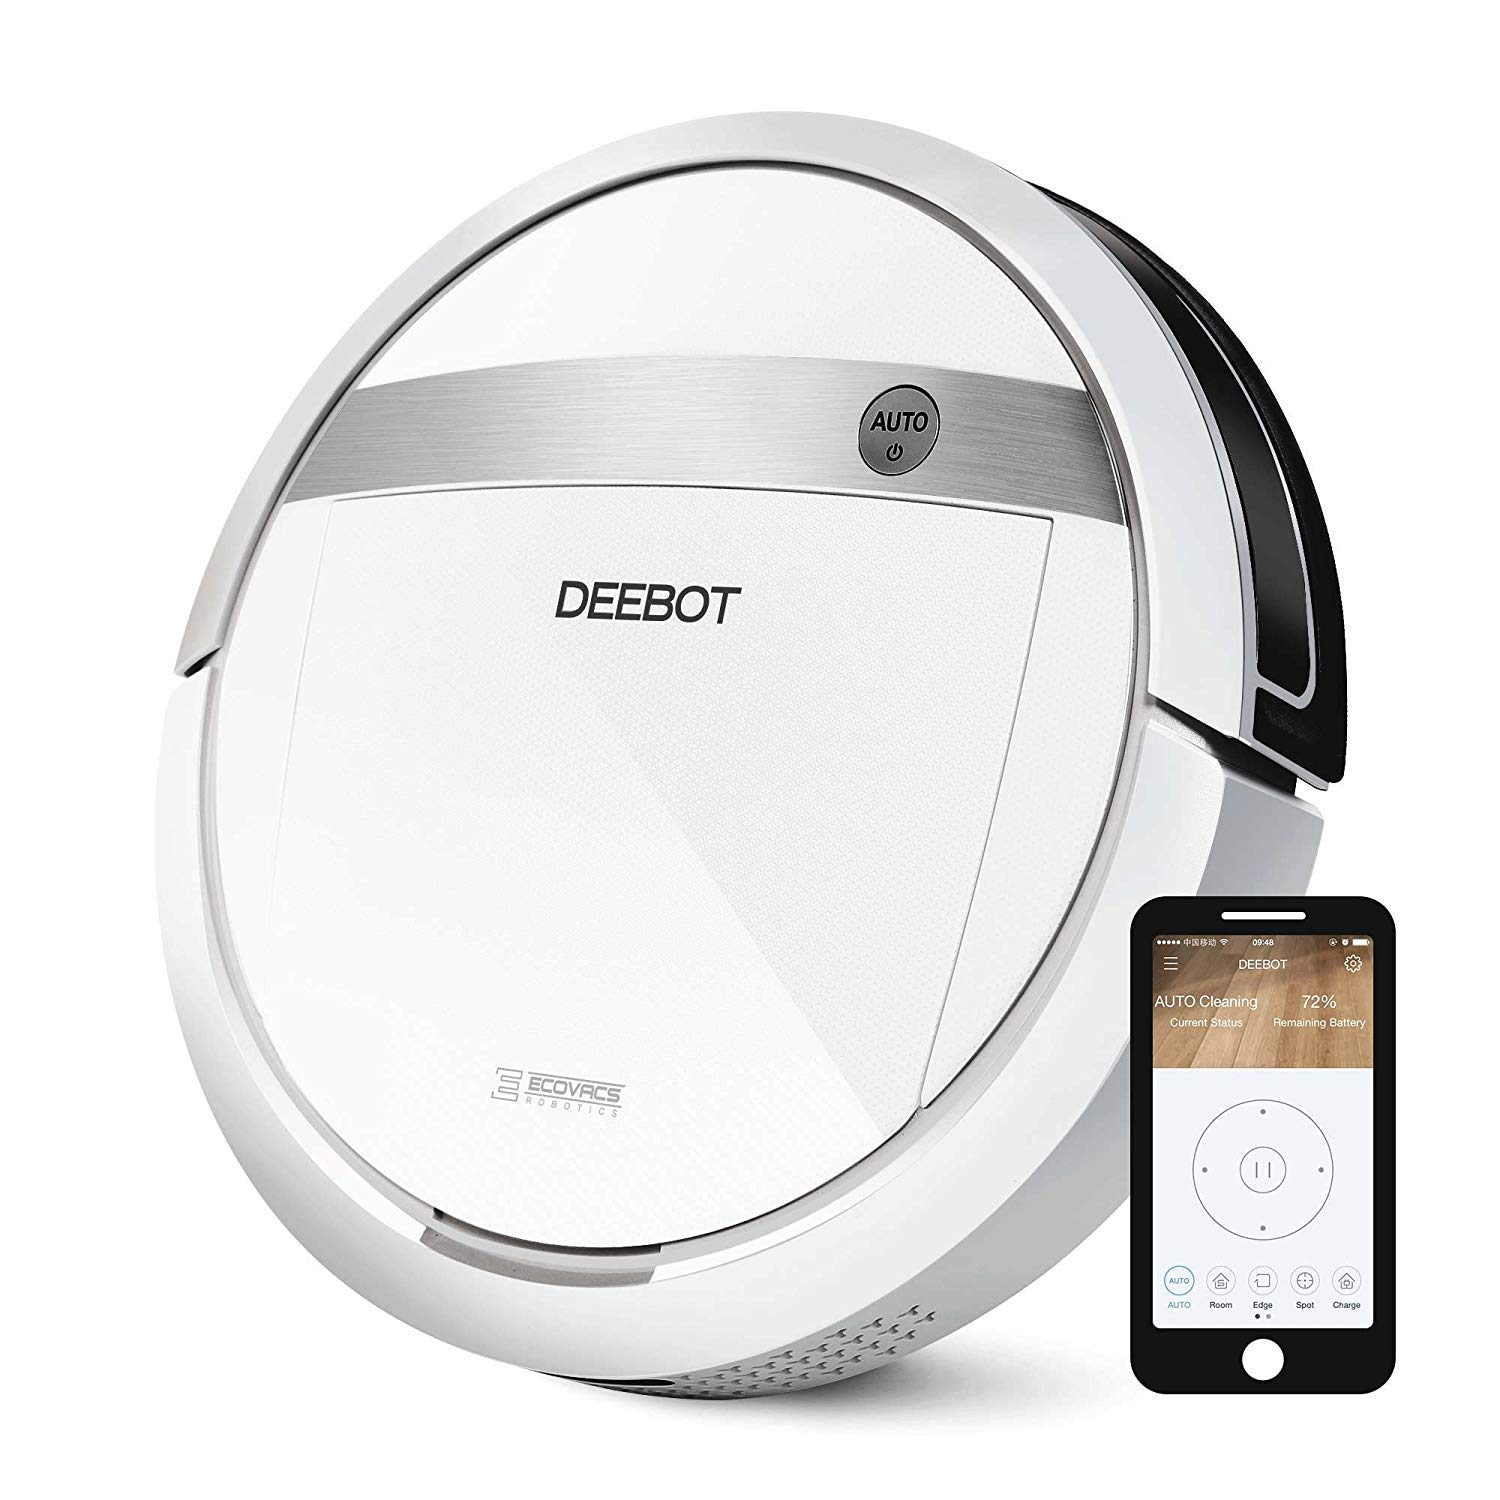 The EcoVacs Deebot M88